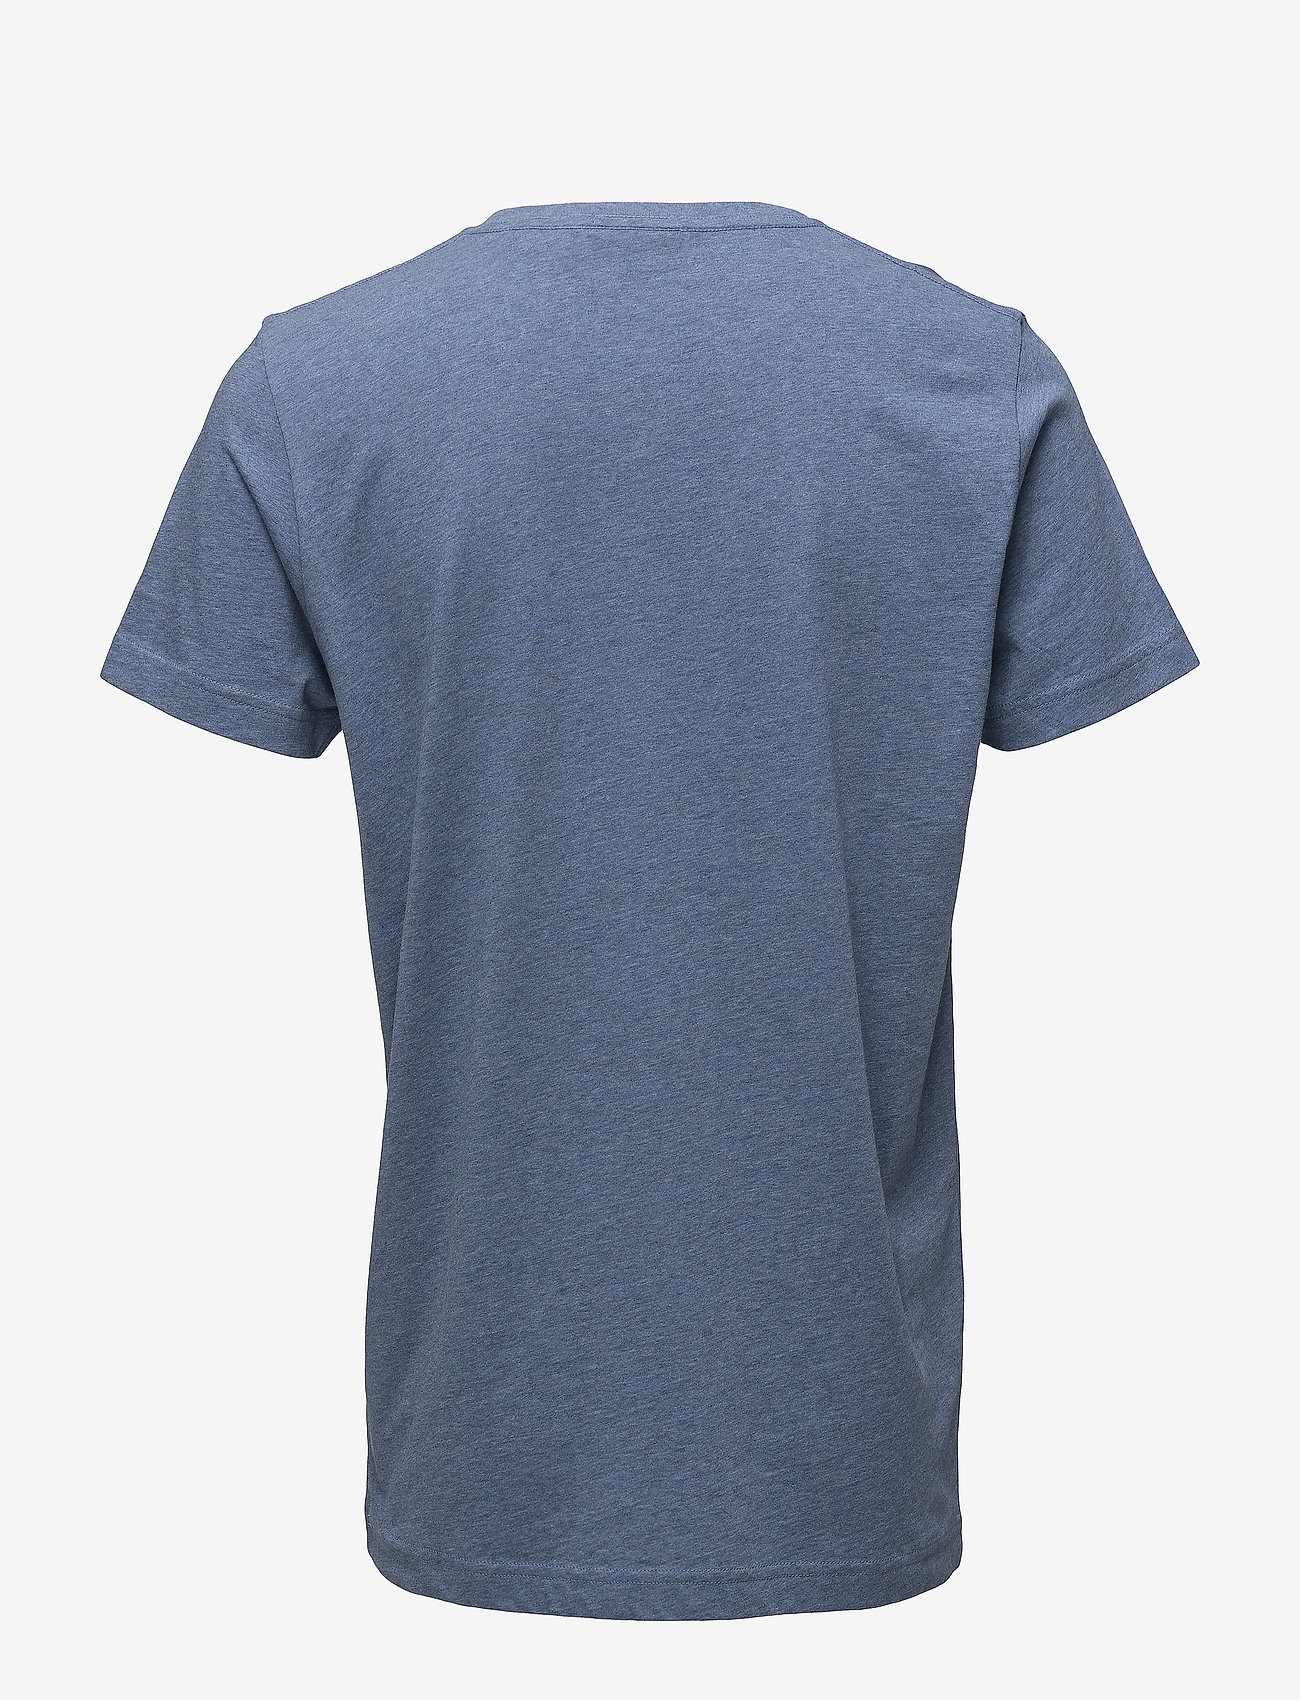 GANT - ORIGINAL SS T-SHIRT - kurzärmelig - denim blue mel - 1